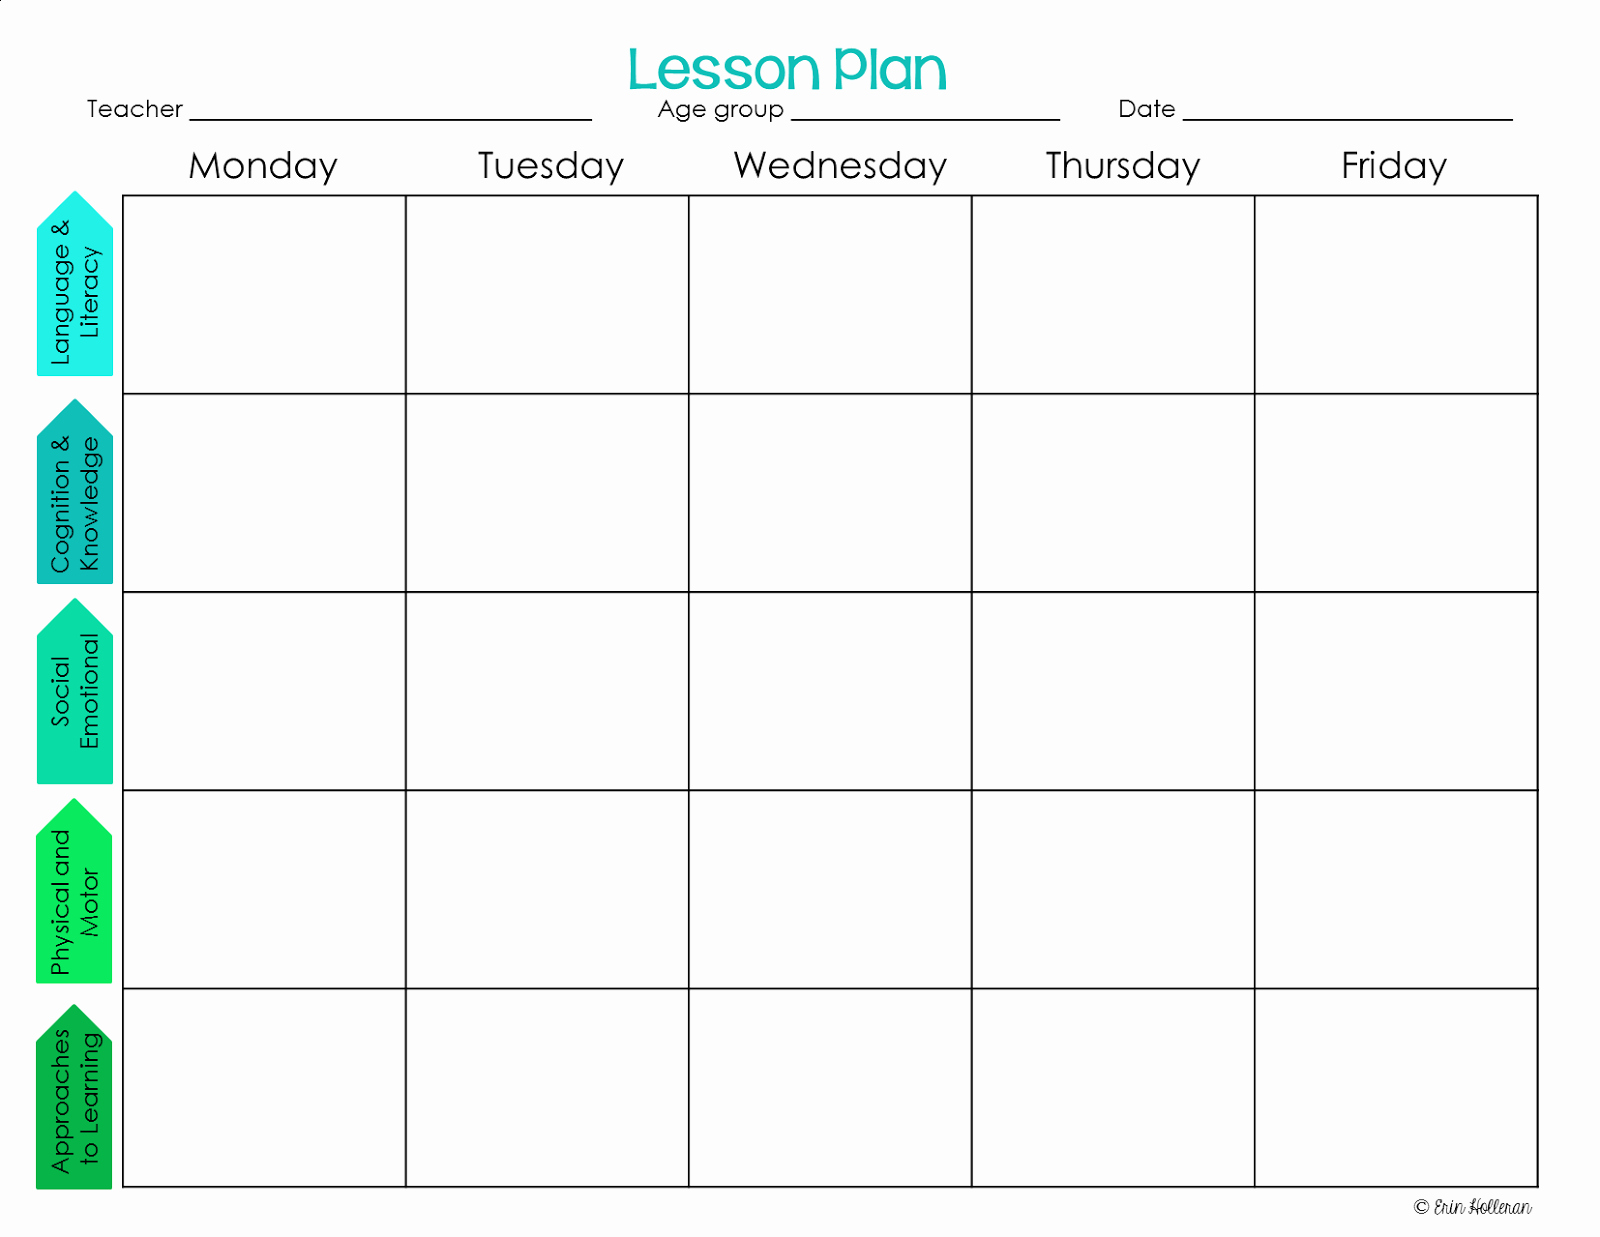 Toddler Lesson Plan Template Awesome Preschool Ponderings Make Your Lesson Plans Work for You